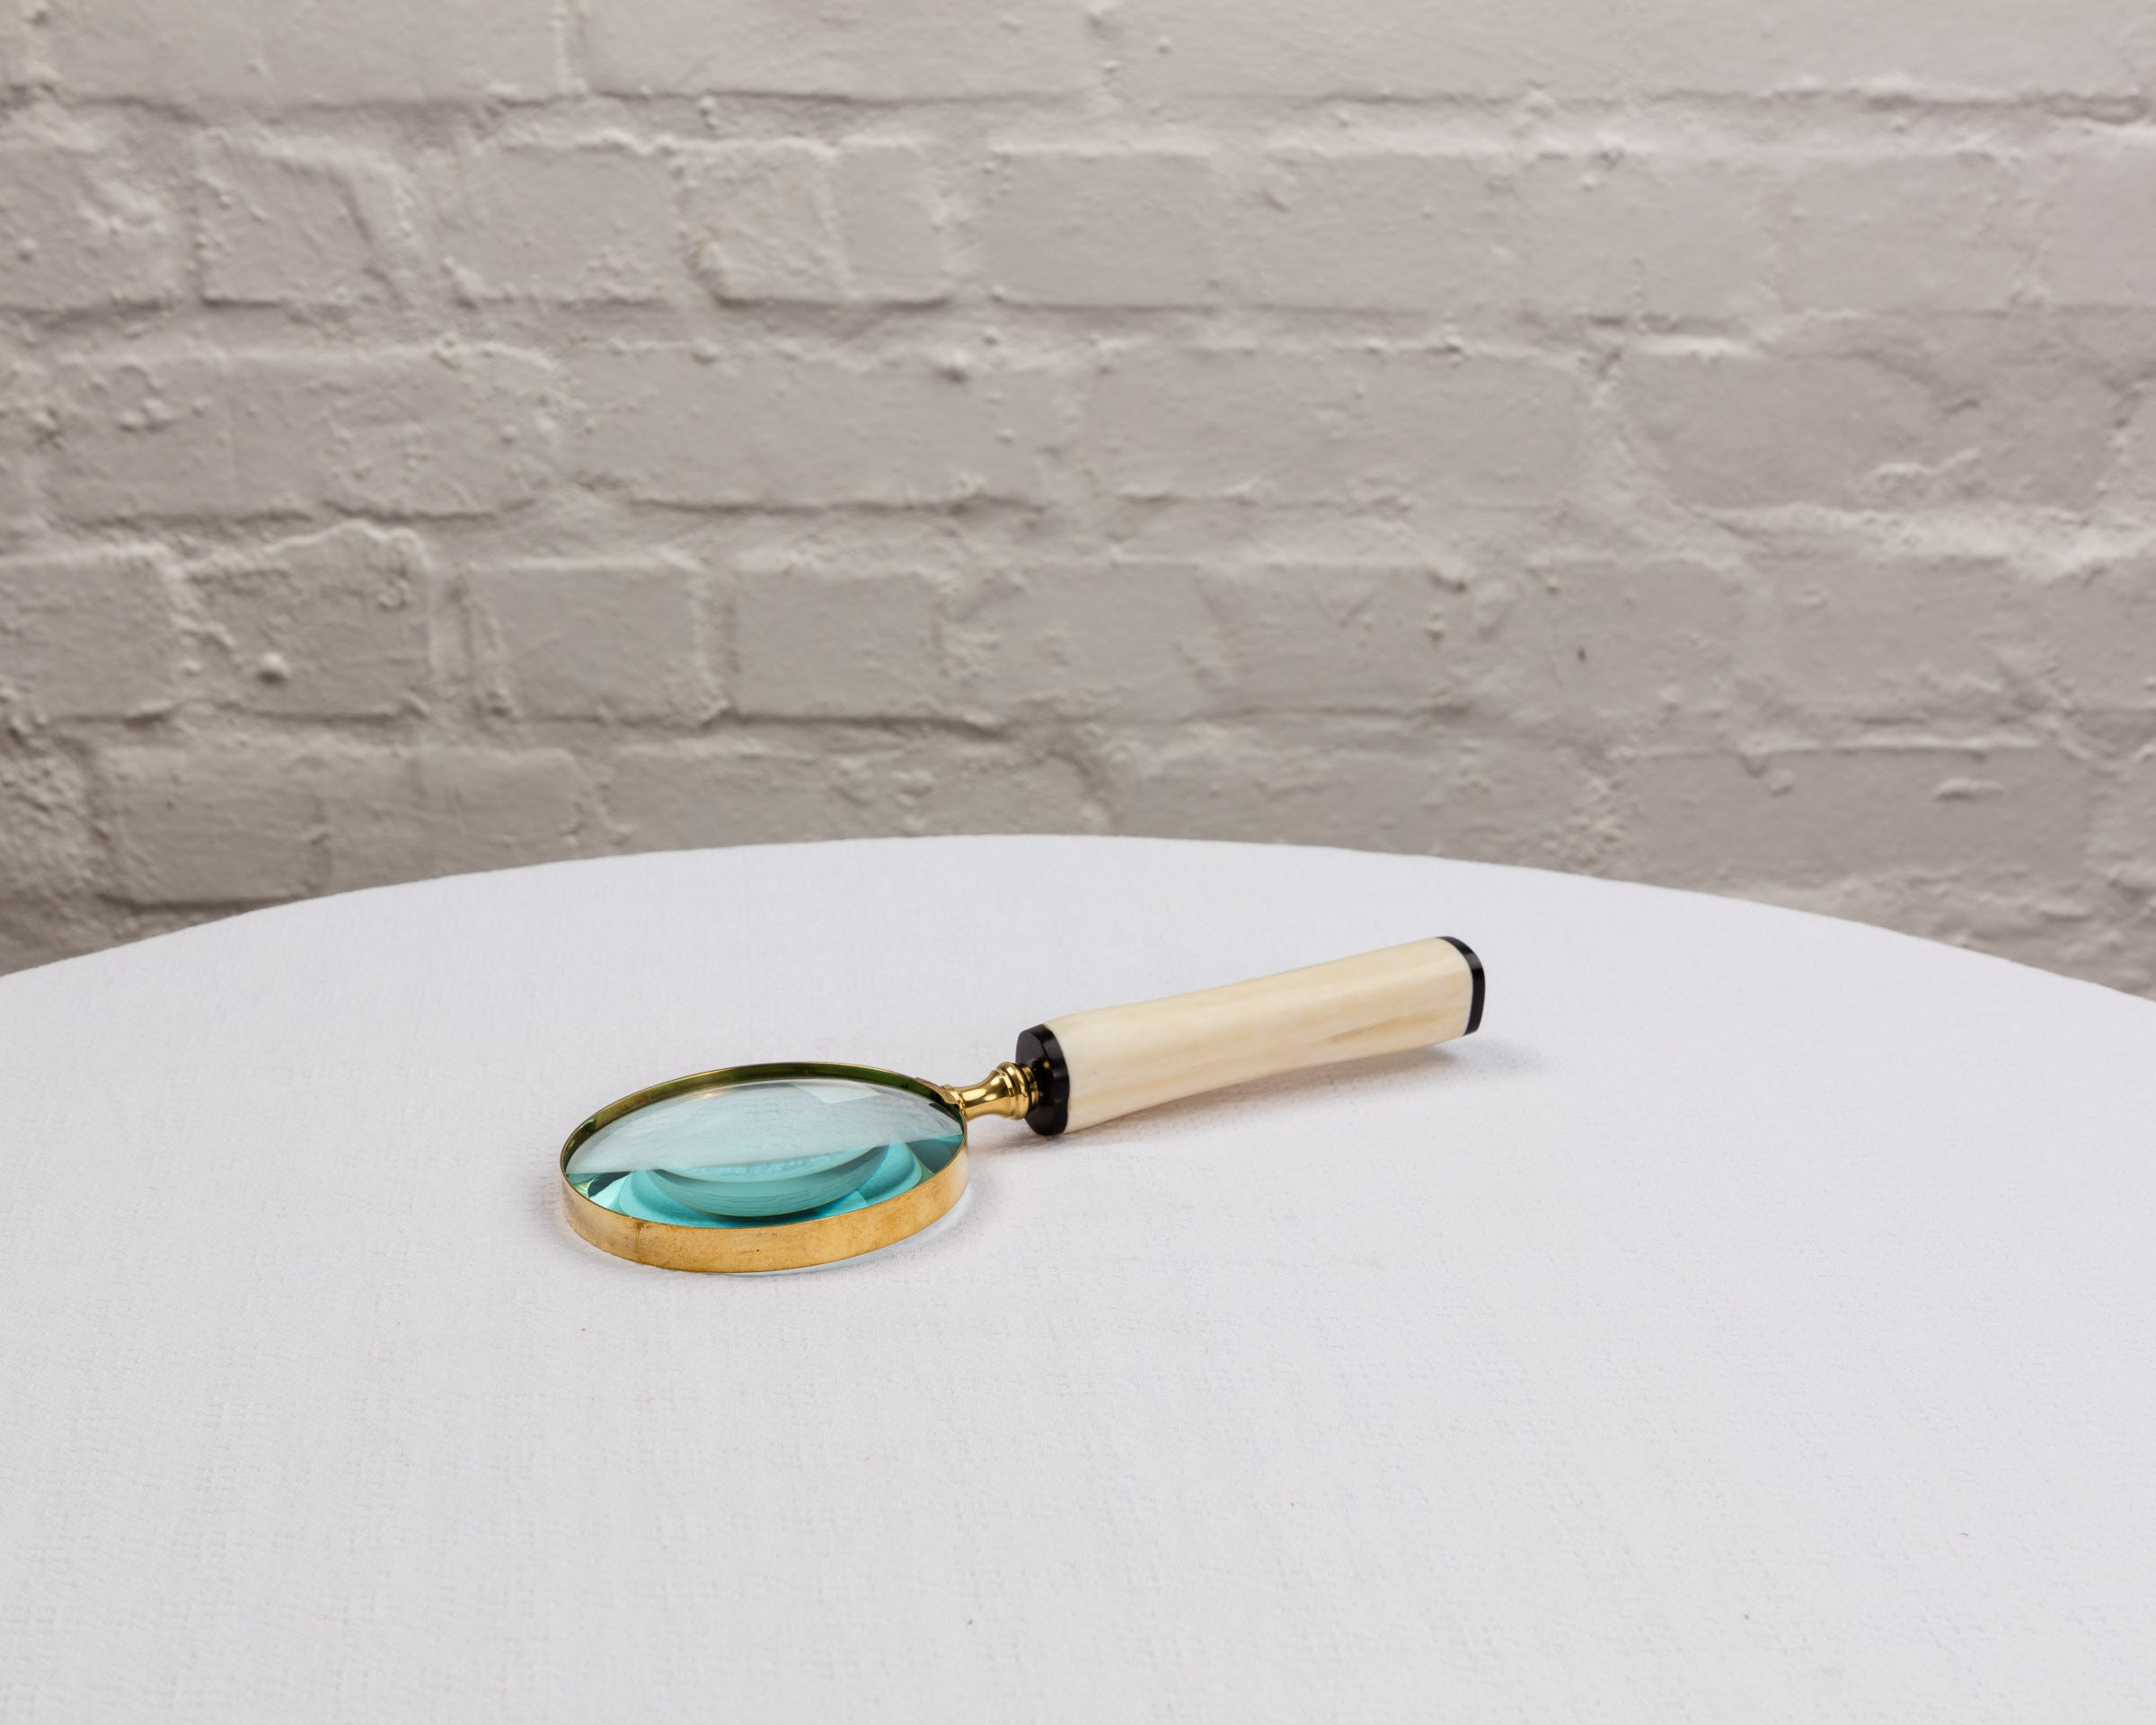 Bone Handled Magnifying Glass